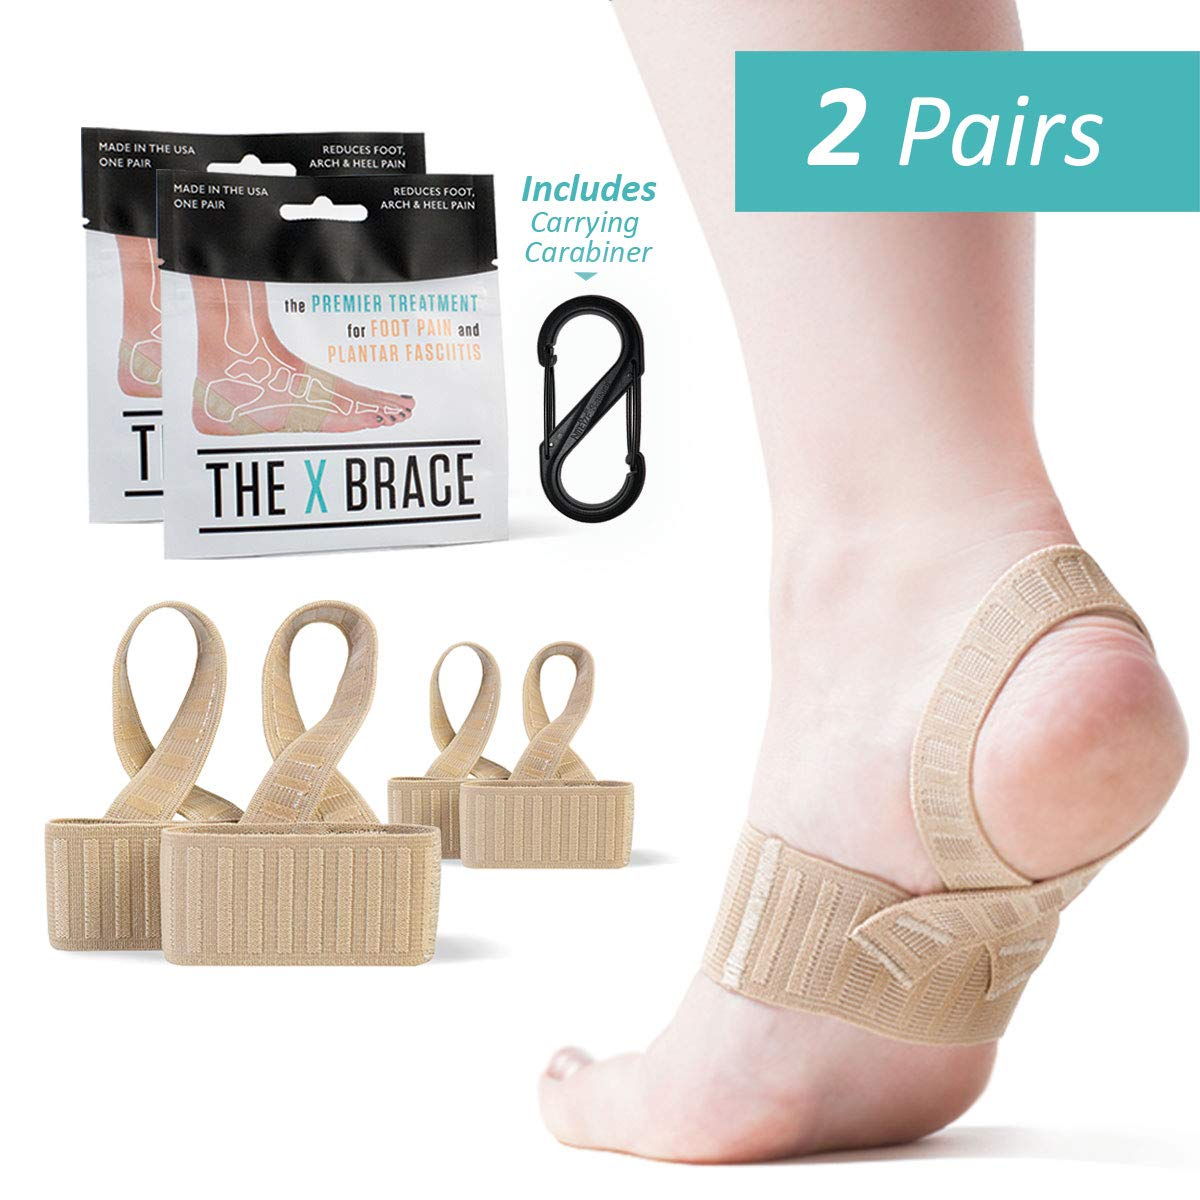 The Original X Brace - Arch Support Brace and Compression for Plantar Fasciitis, Sever's Disease, Flat Feet, Fallen Arches, Over-Pronation and Heel Pain, Logo Free - Medium (2-Pairs) by The X Brace